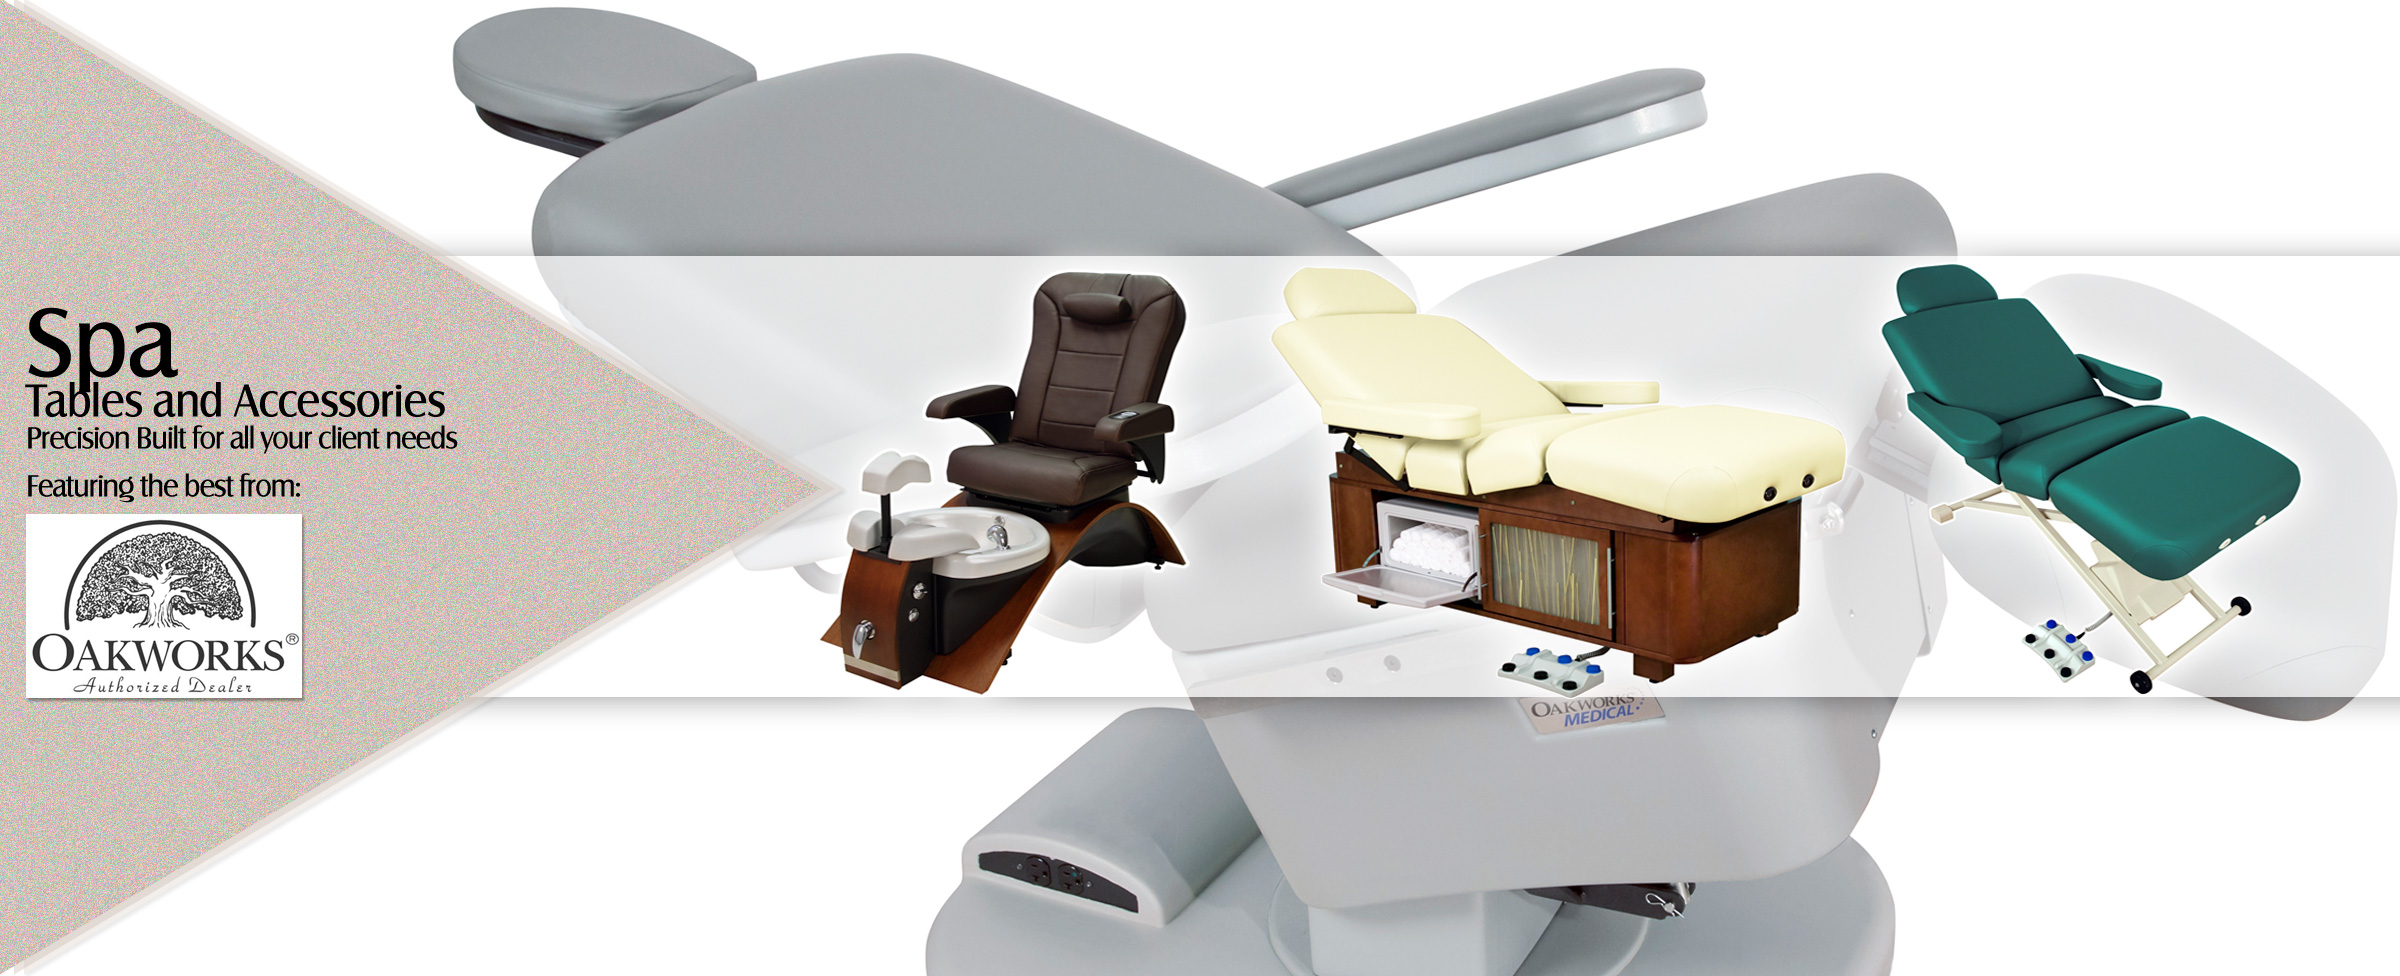 HFG International - Spa Tables and Accessories